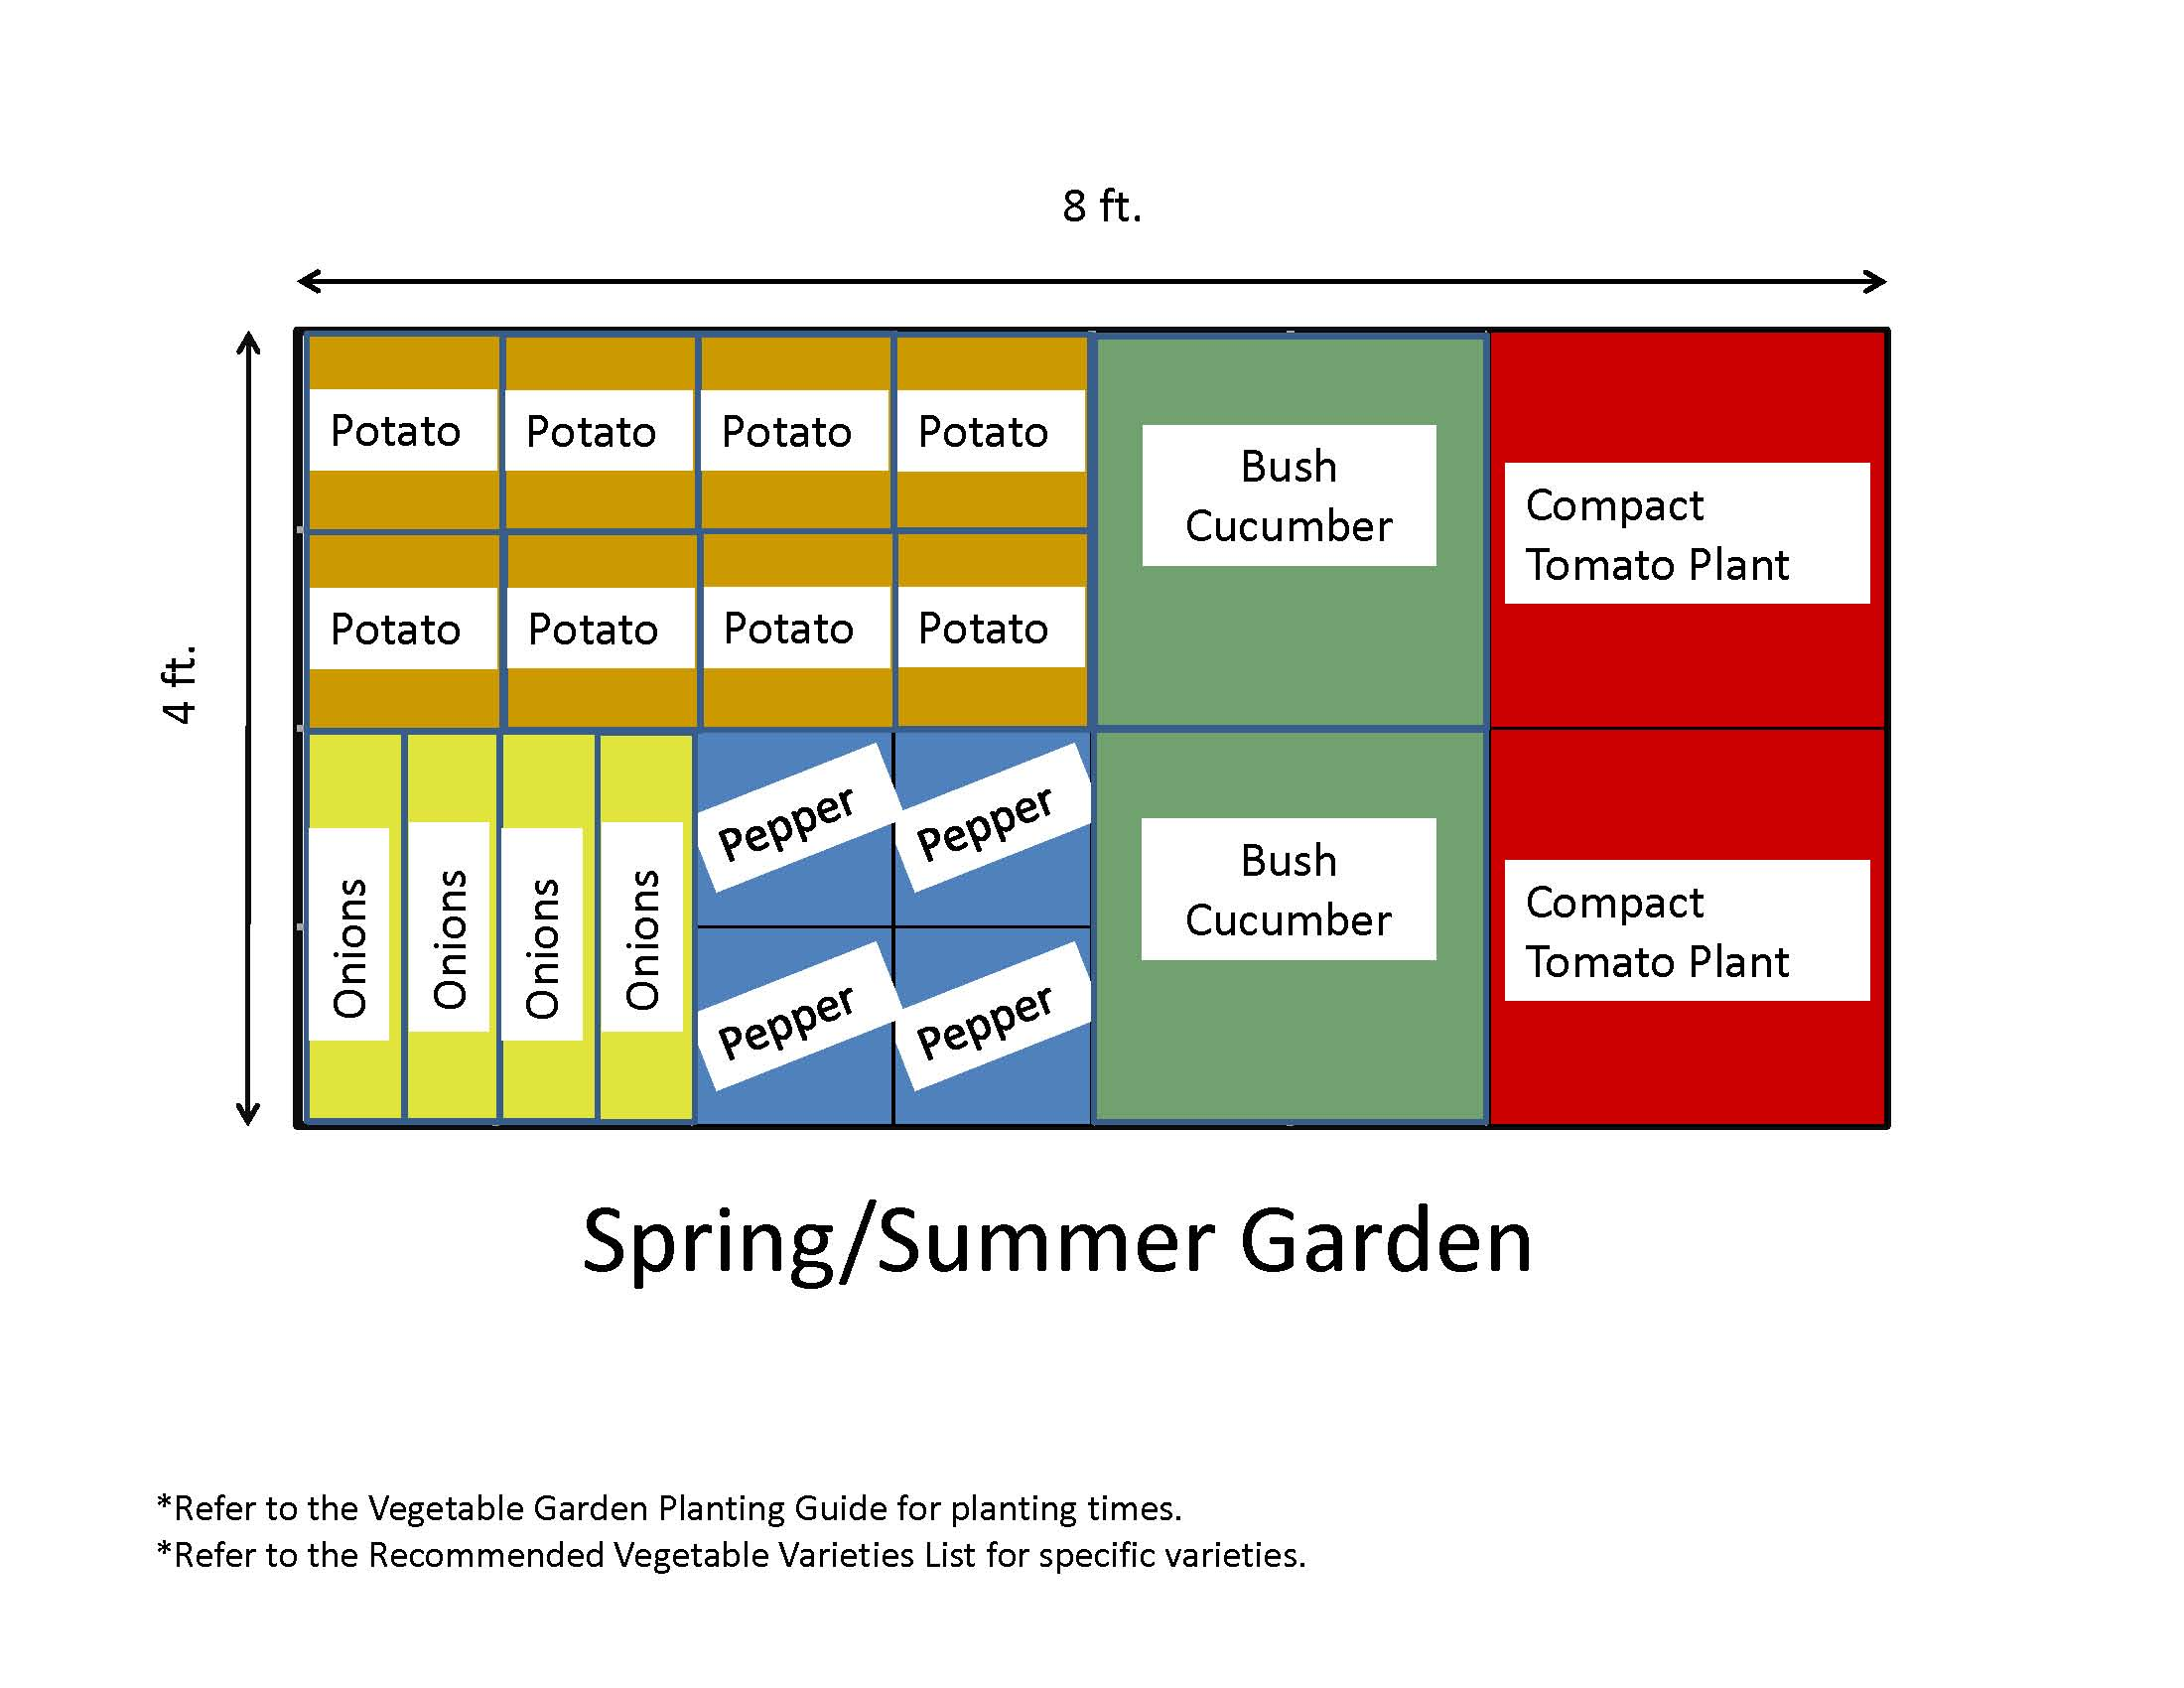 Garden Templates | The Demo Garden Blog